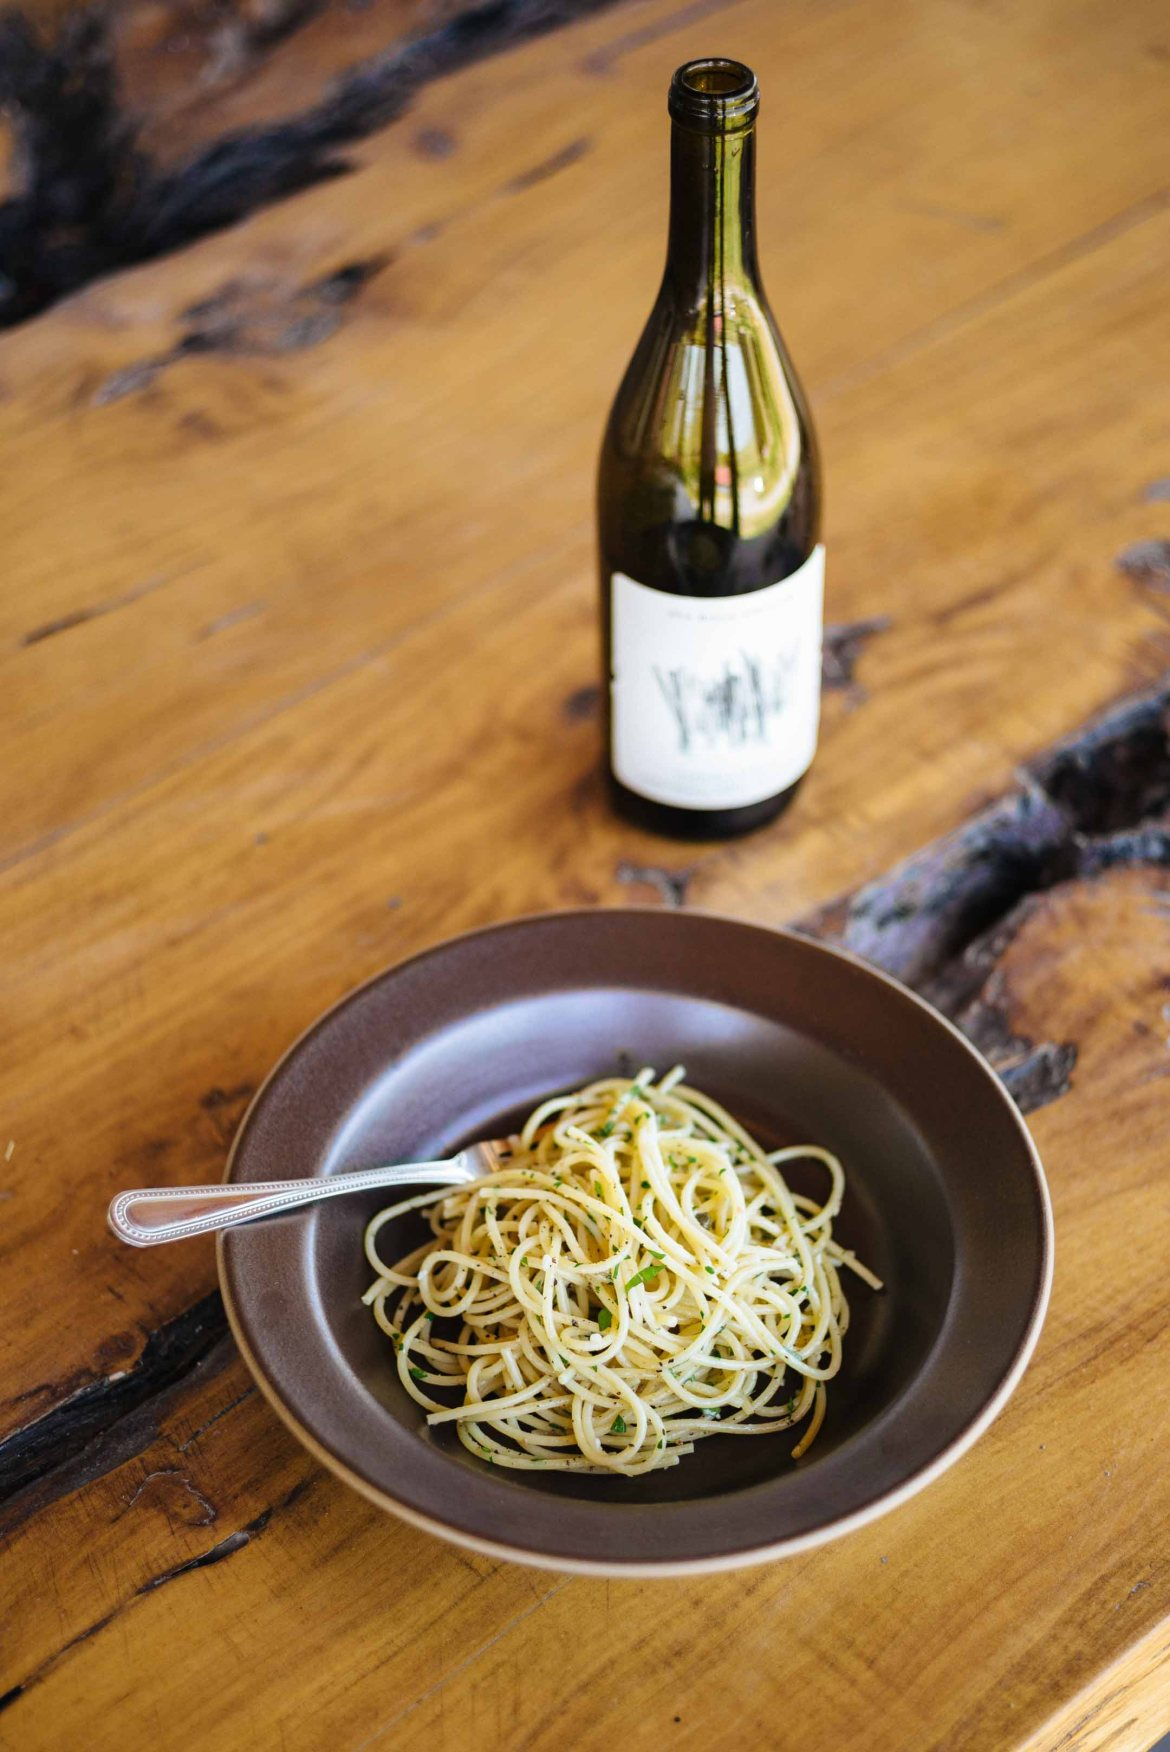 Pair a crisp wine with spaghetti with anchovies and capers.   thetasteedit.com #recipe #pasta #easy